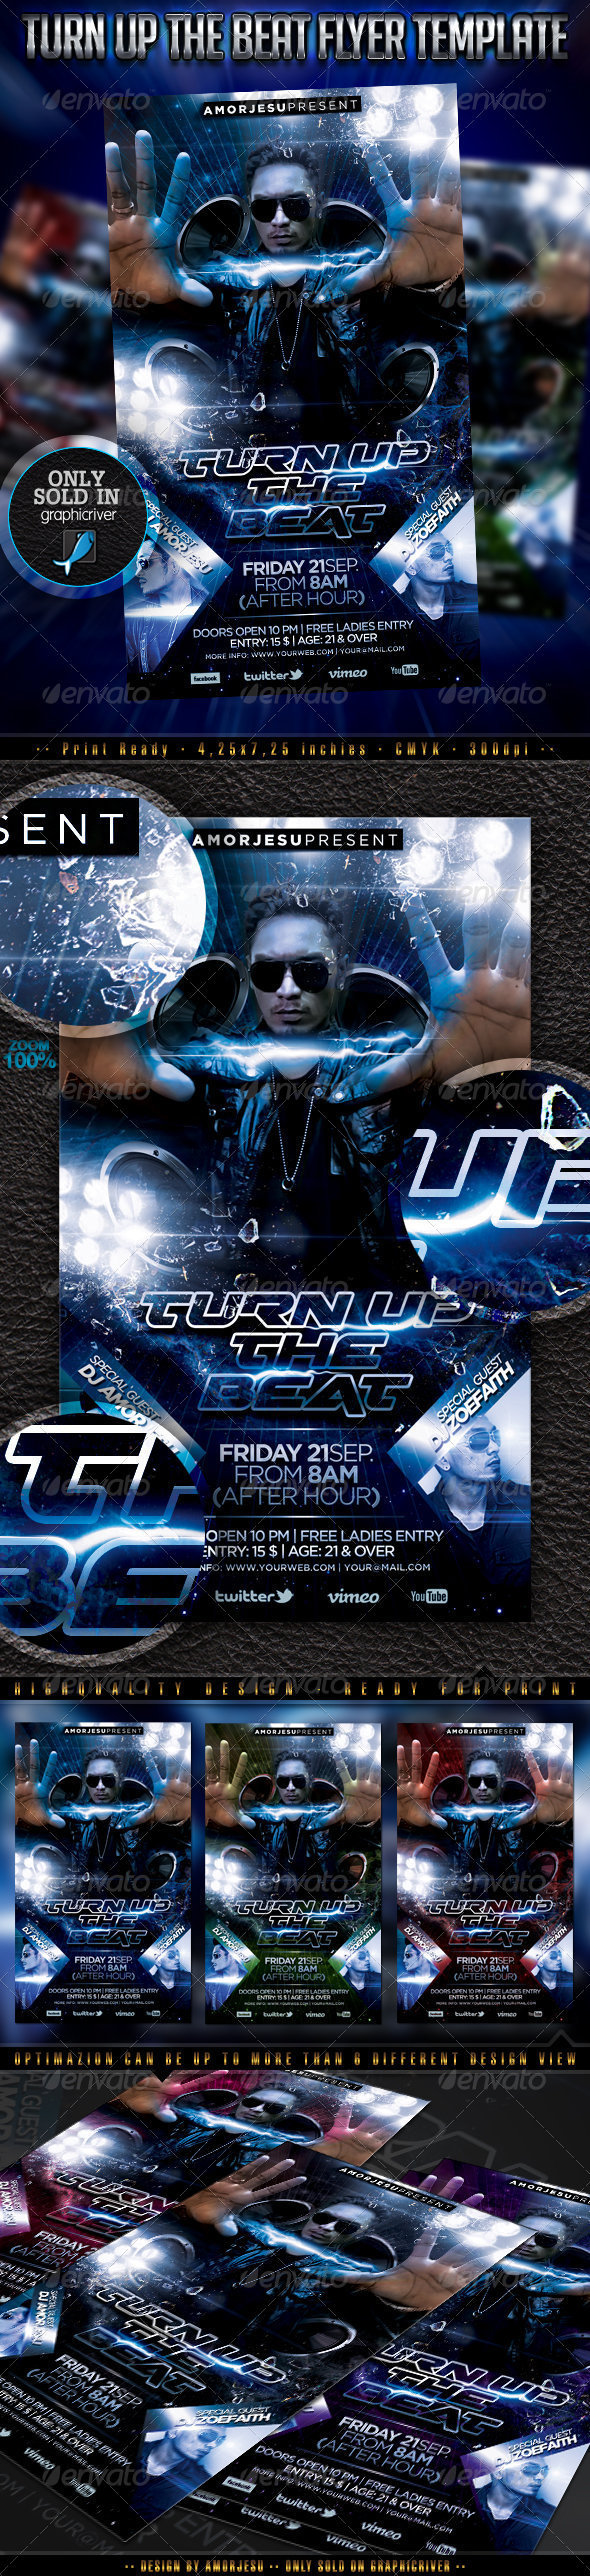 Turn Up The Beat Flyer Template - Clubs & Parties Events